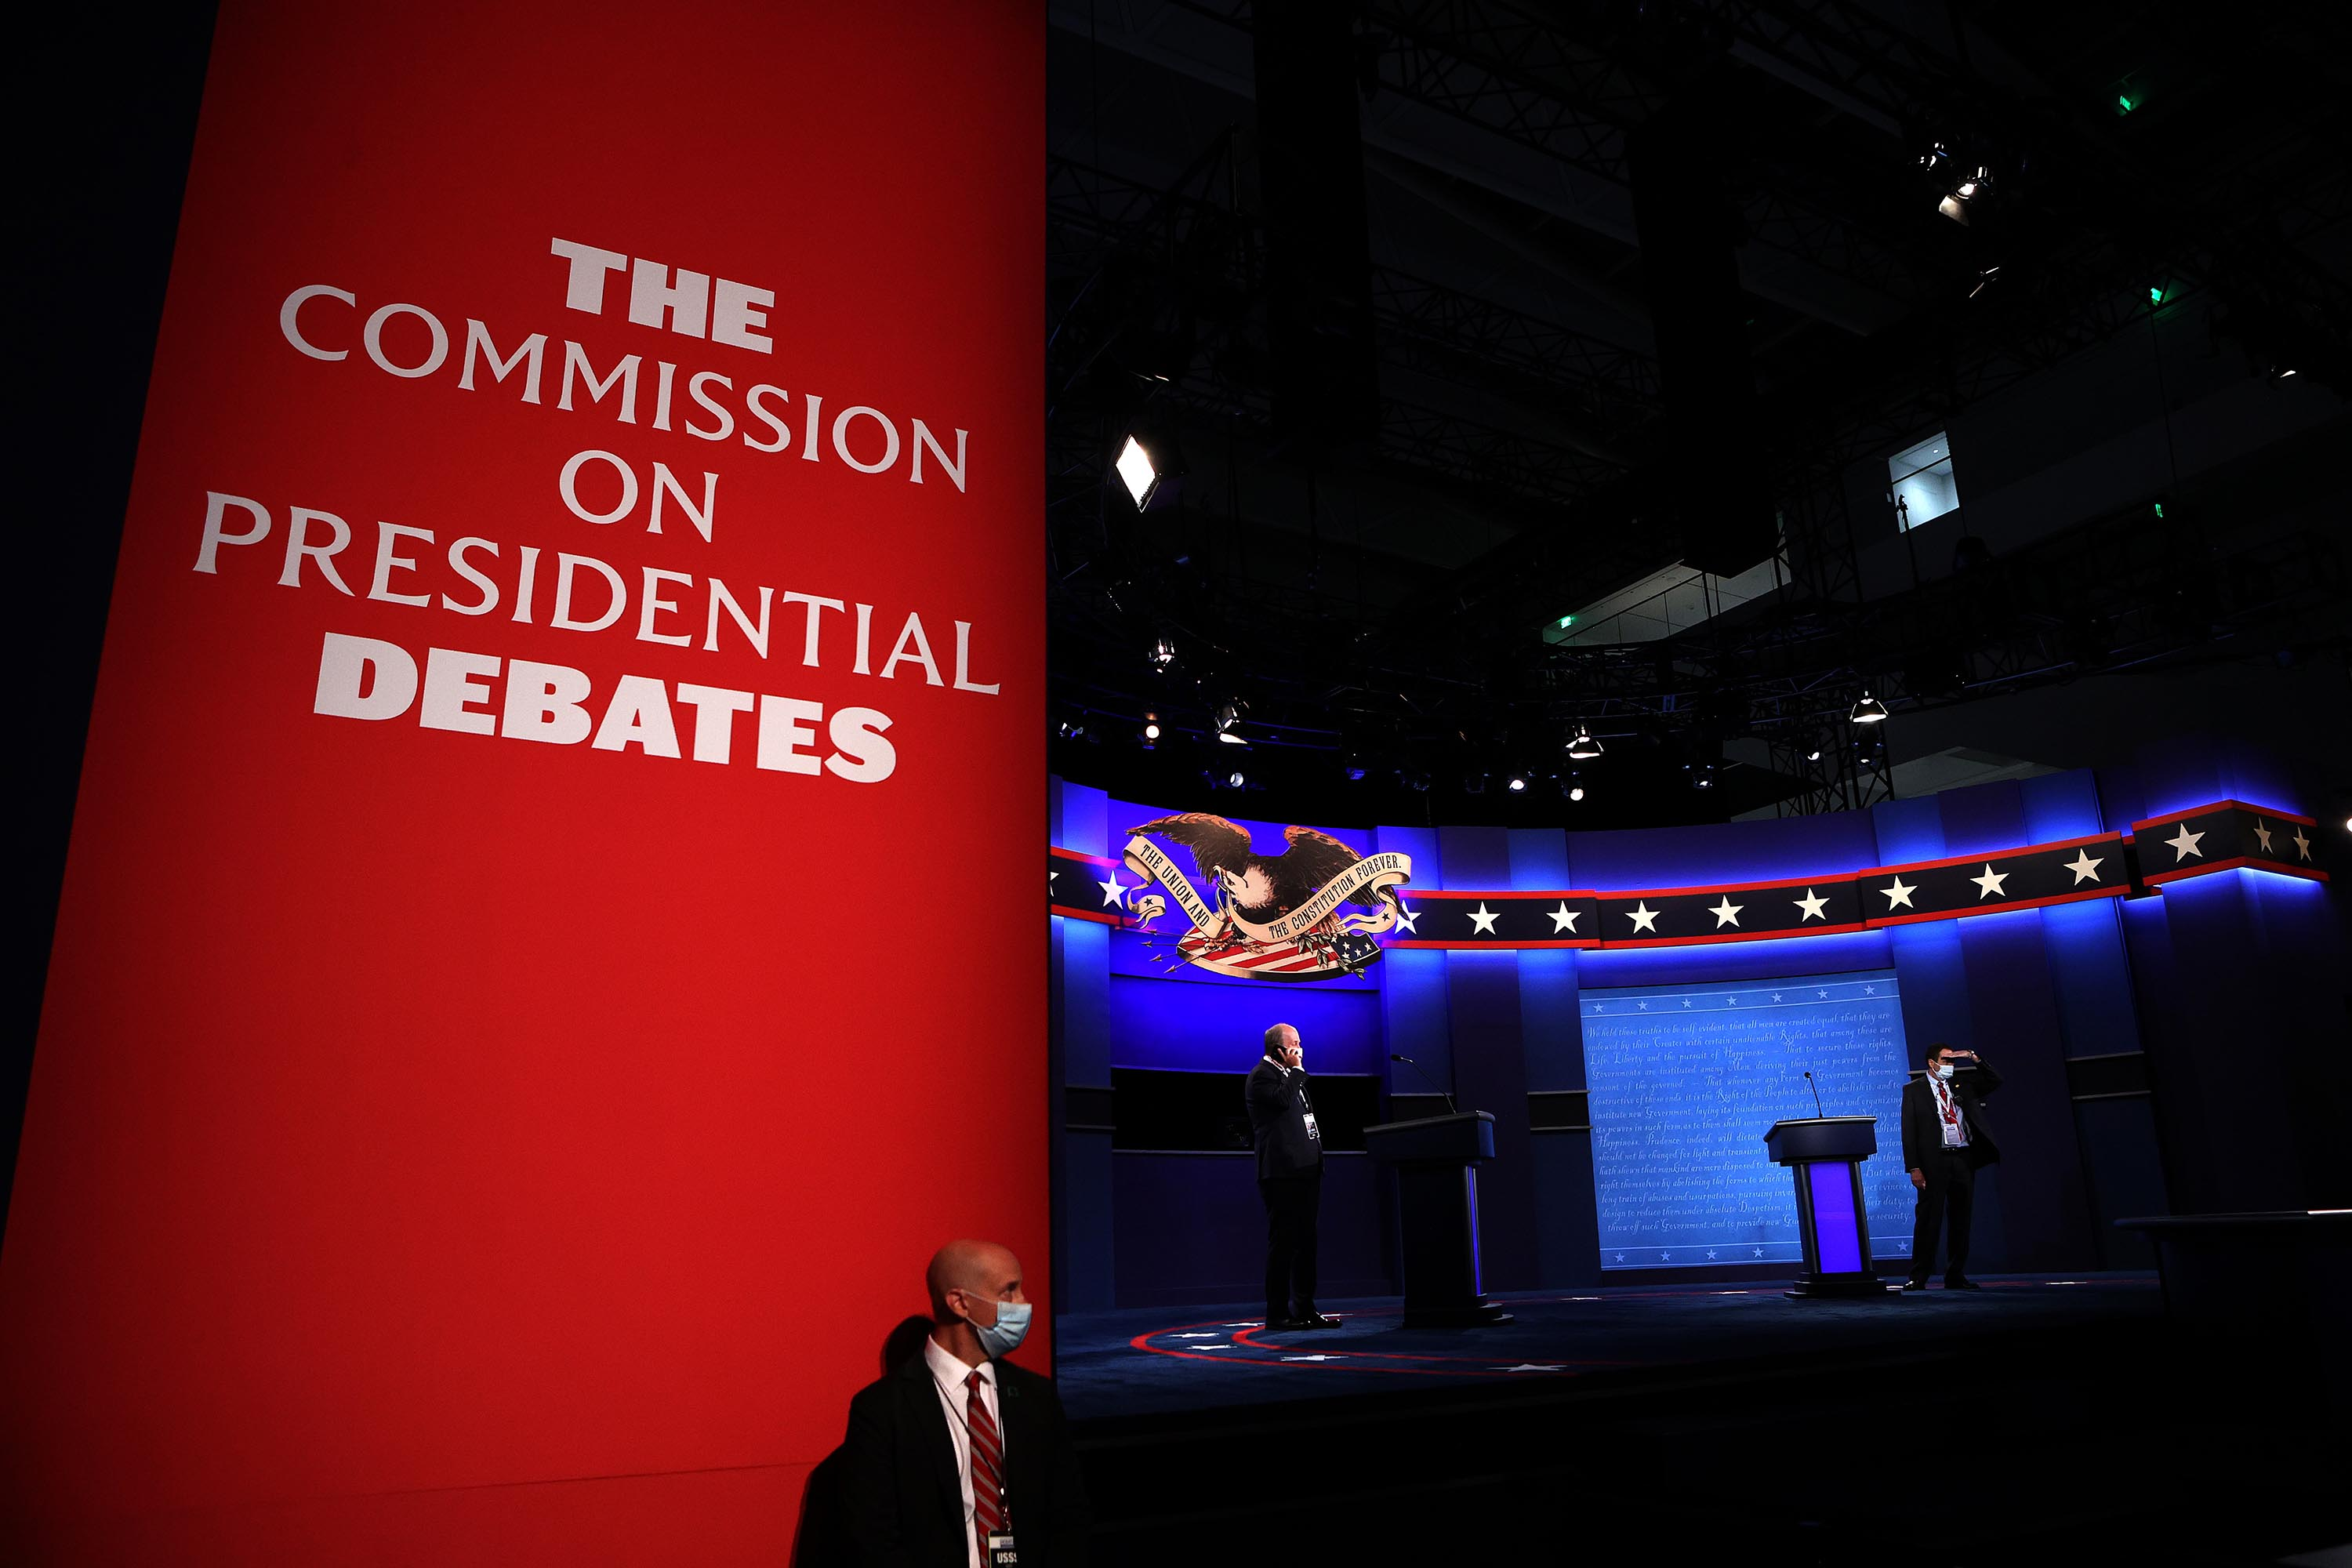 Commission on Presidential Debates says it will make changes to format to 'ensure a more orderly discussion'